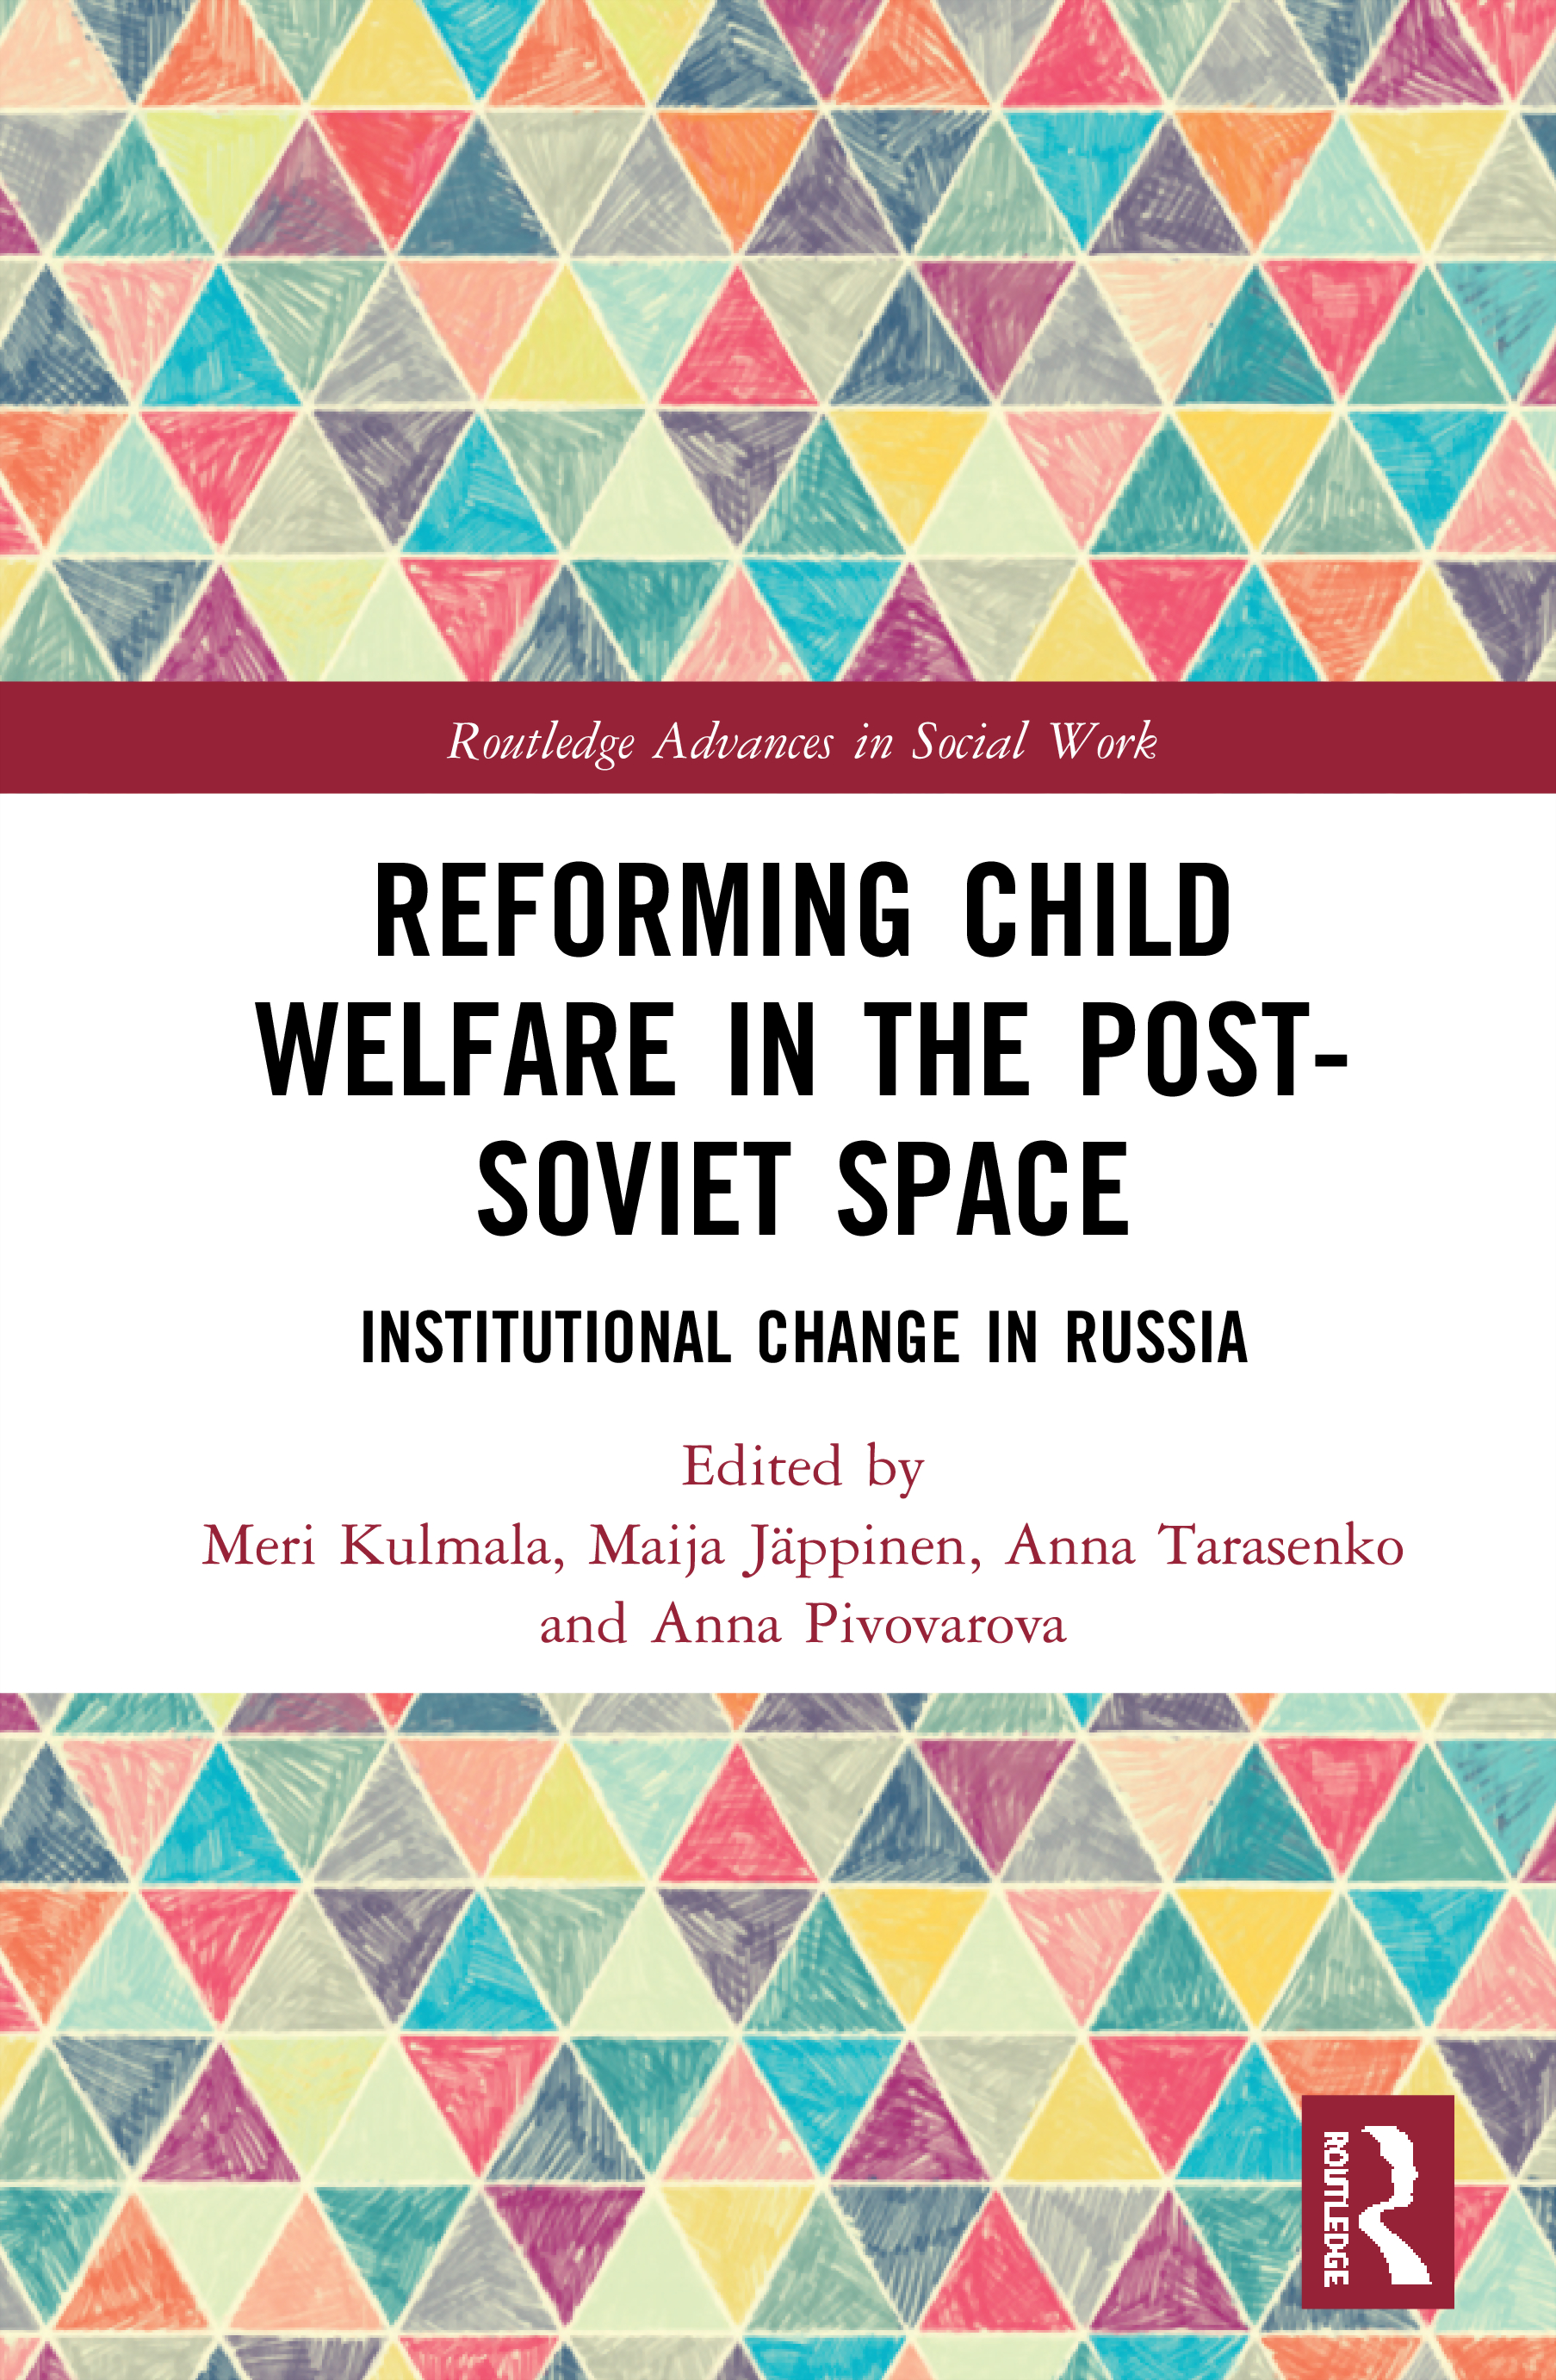 Reforming Child Welfare in the Post-Soviet Space